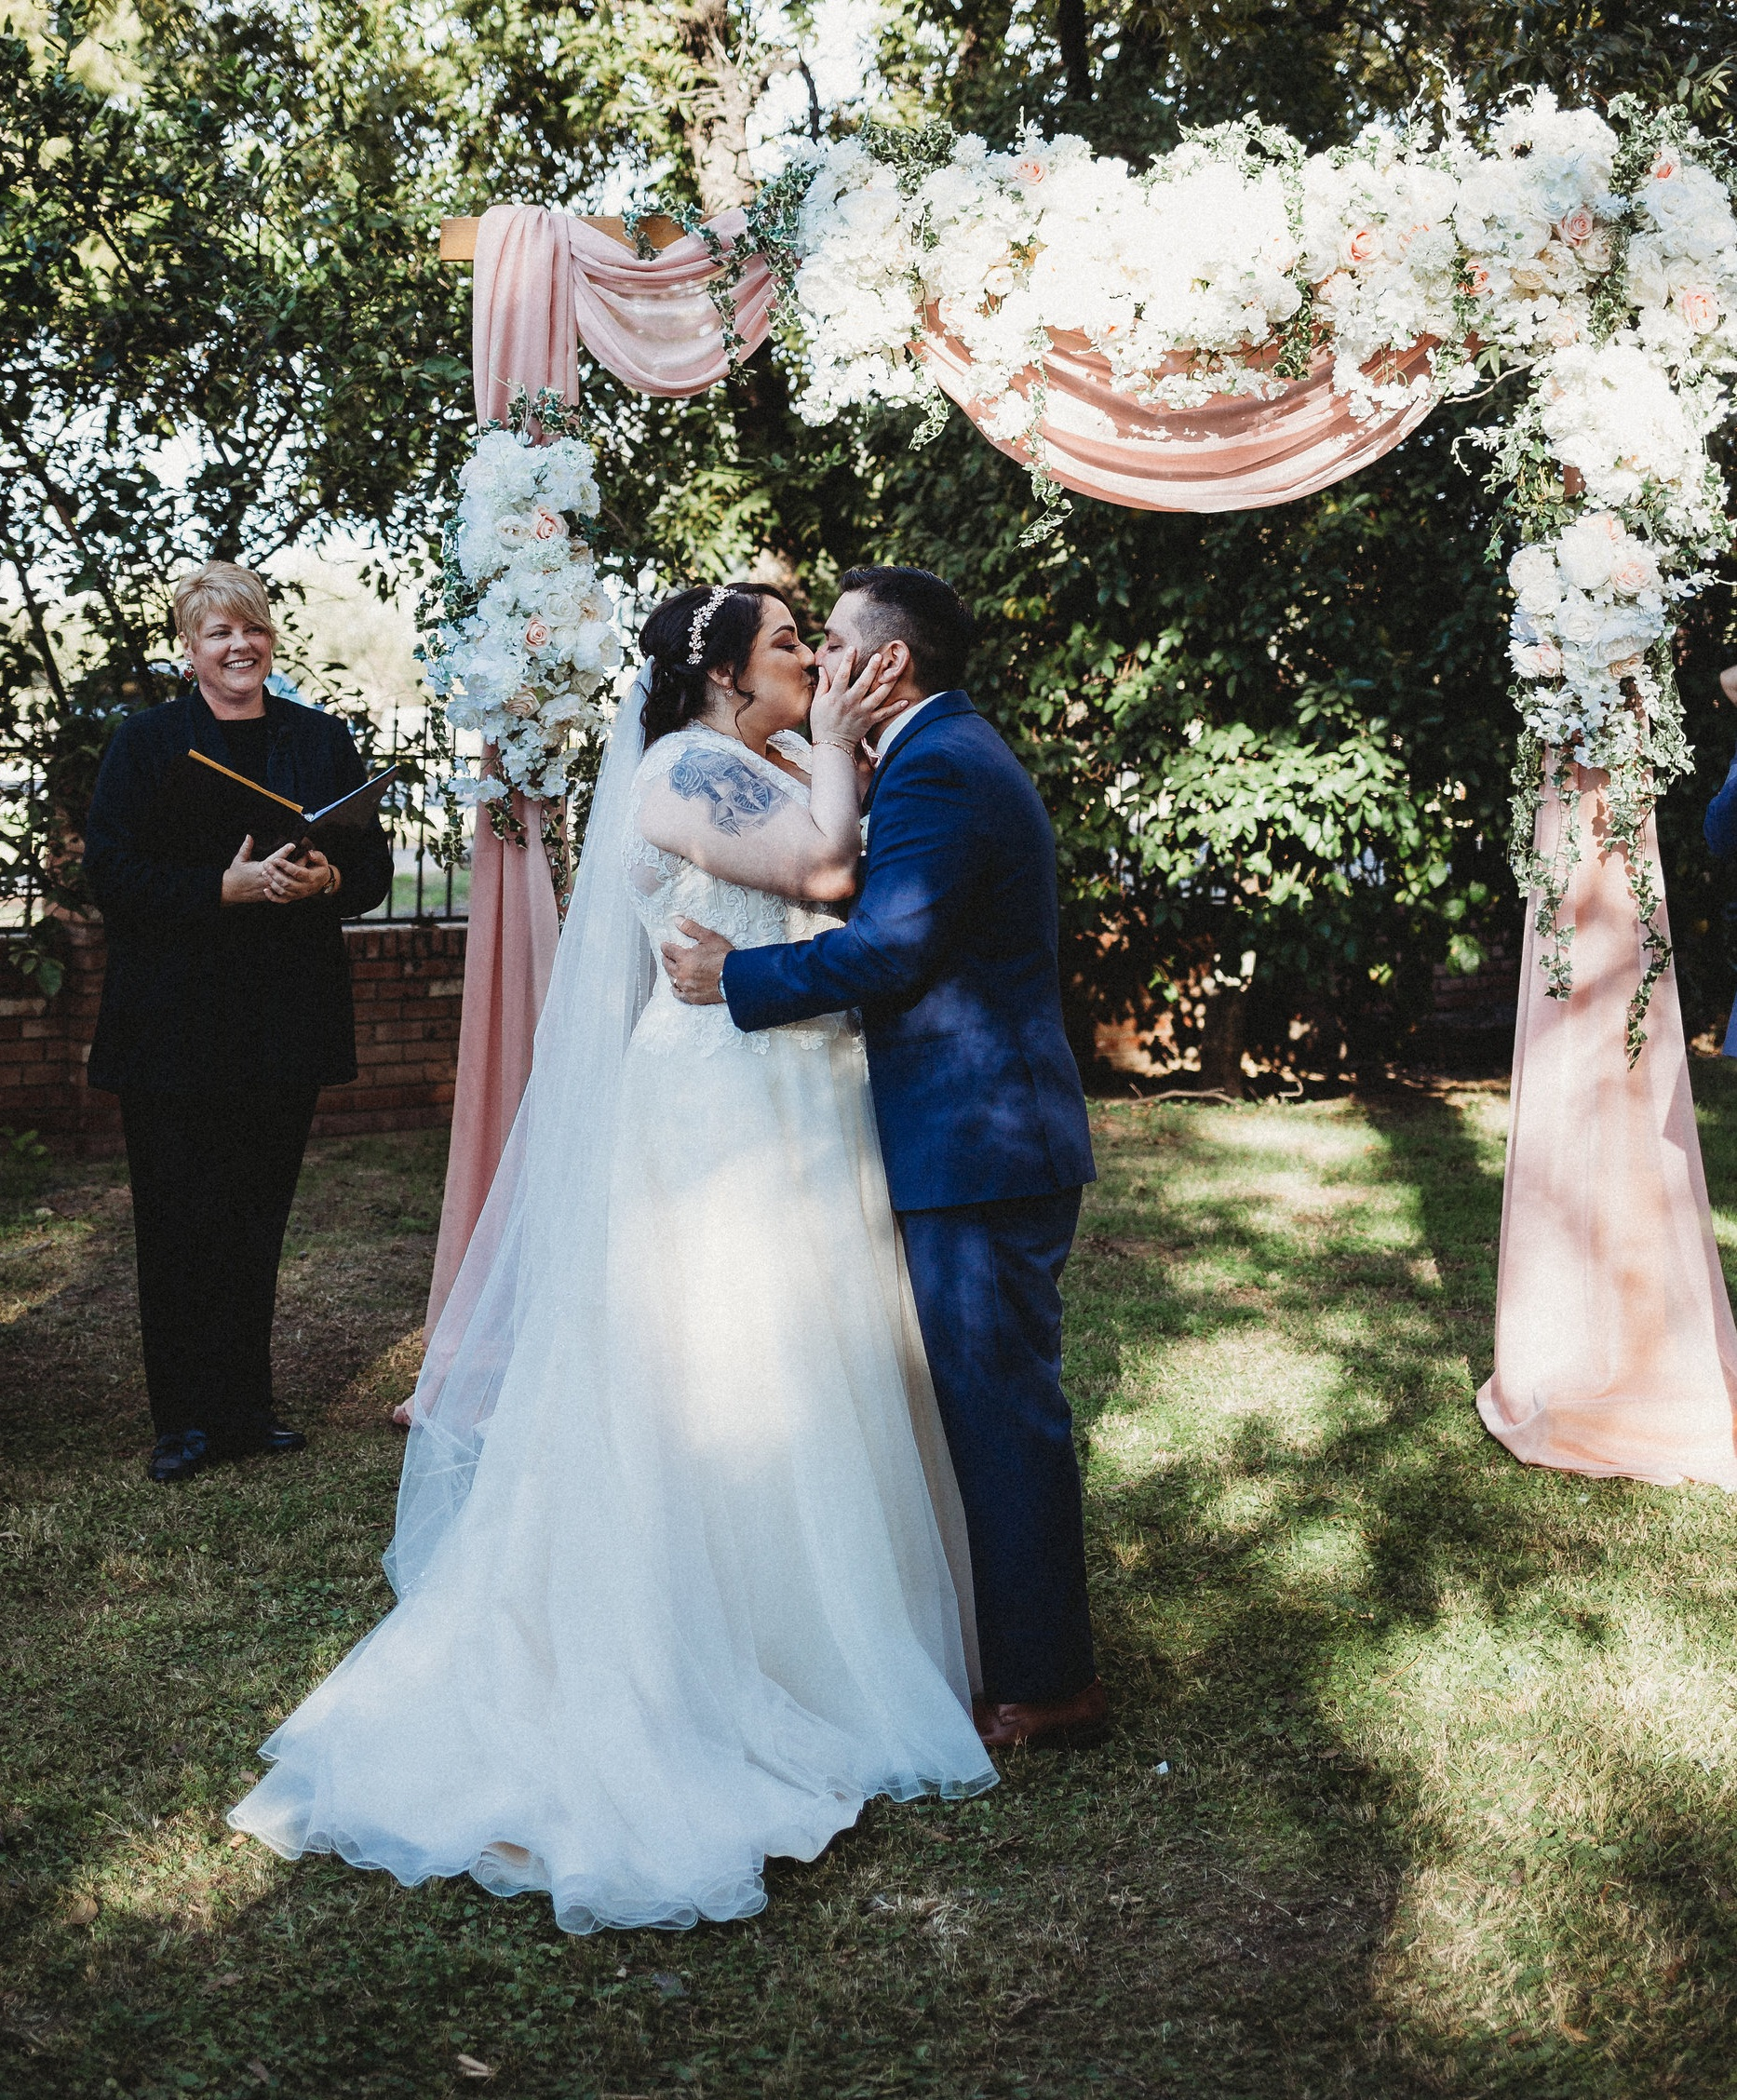 Custom pieces for your wedding ceremony & reception - (rental prices shown)Rustic wooden bar, 4 foot wide - $95.00A 8x8 ft arch - $75.00 (Shown on left, you would supply your own fabric and flowers)Donut wall - $40.002x3 signs - $35.00(Delivery /set up fee starting at $50.00 up to 20 miles)Package deals and custom orders (prices will vary)Price match for similar items.